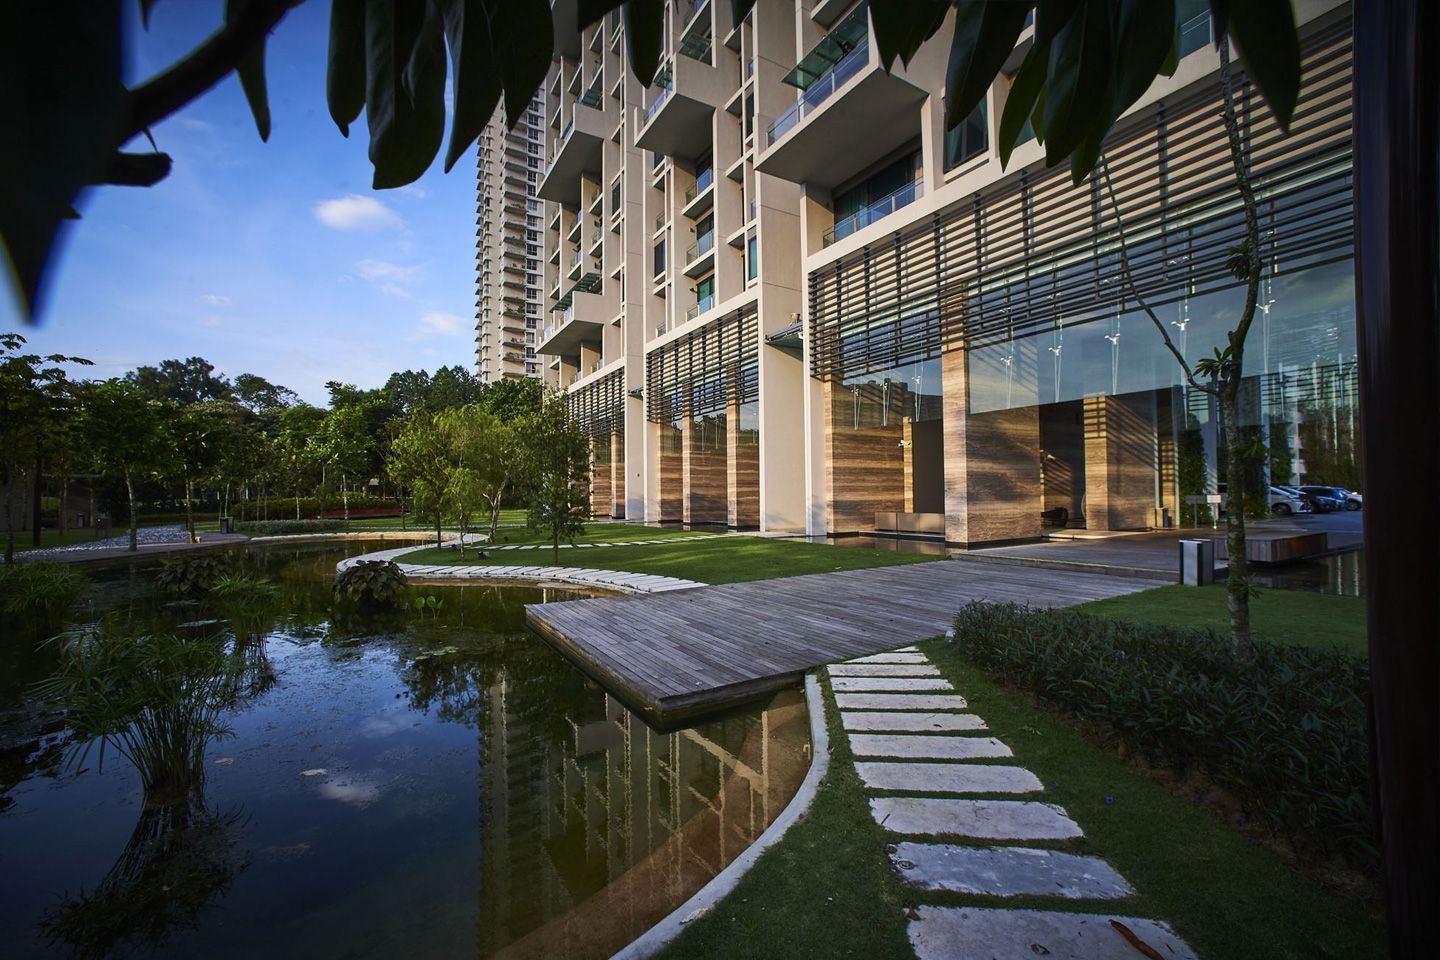 Raised Image